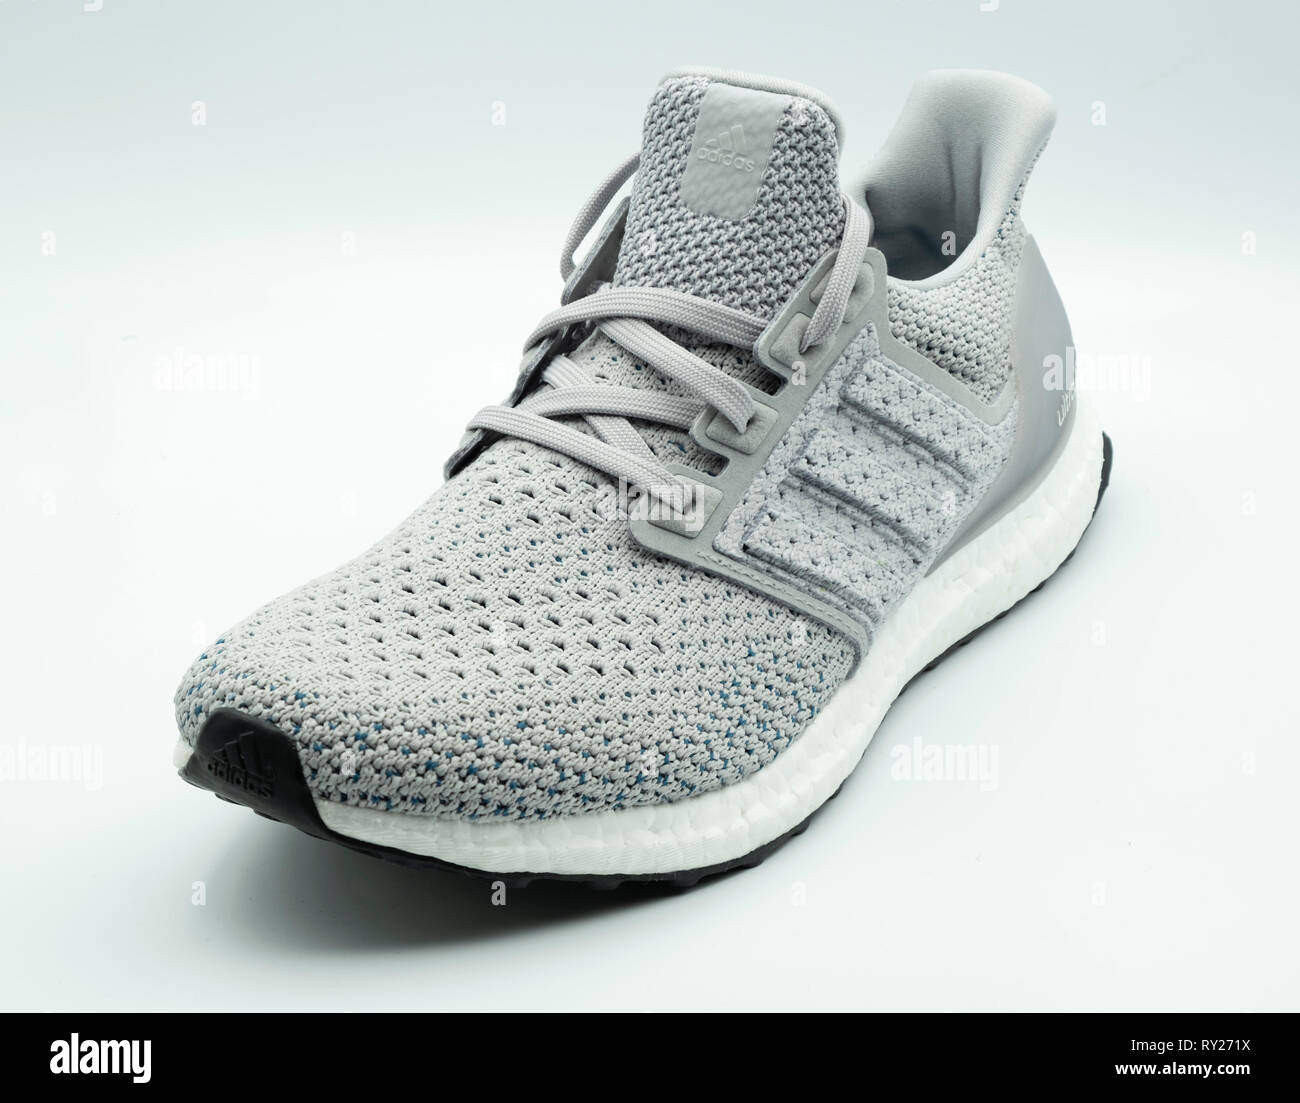 b1d5137e Adidas Ultra Boost clima grey sneaker cutout isolated on white background